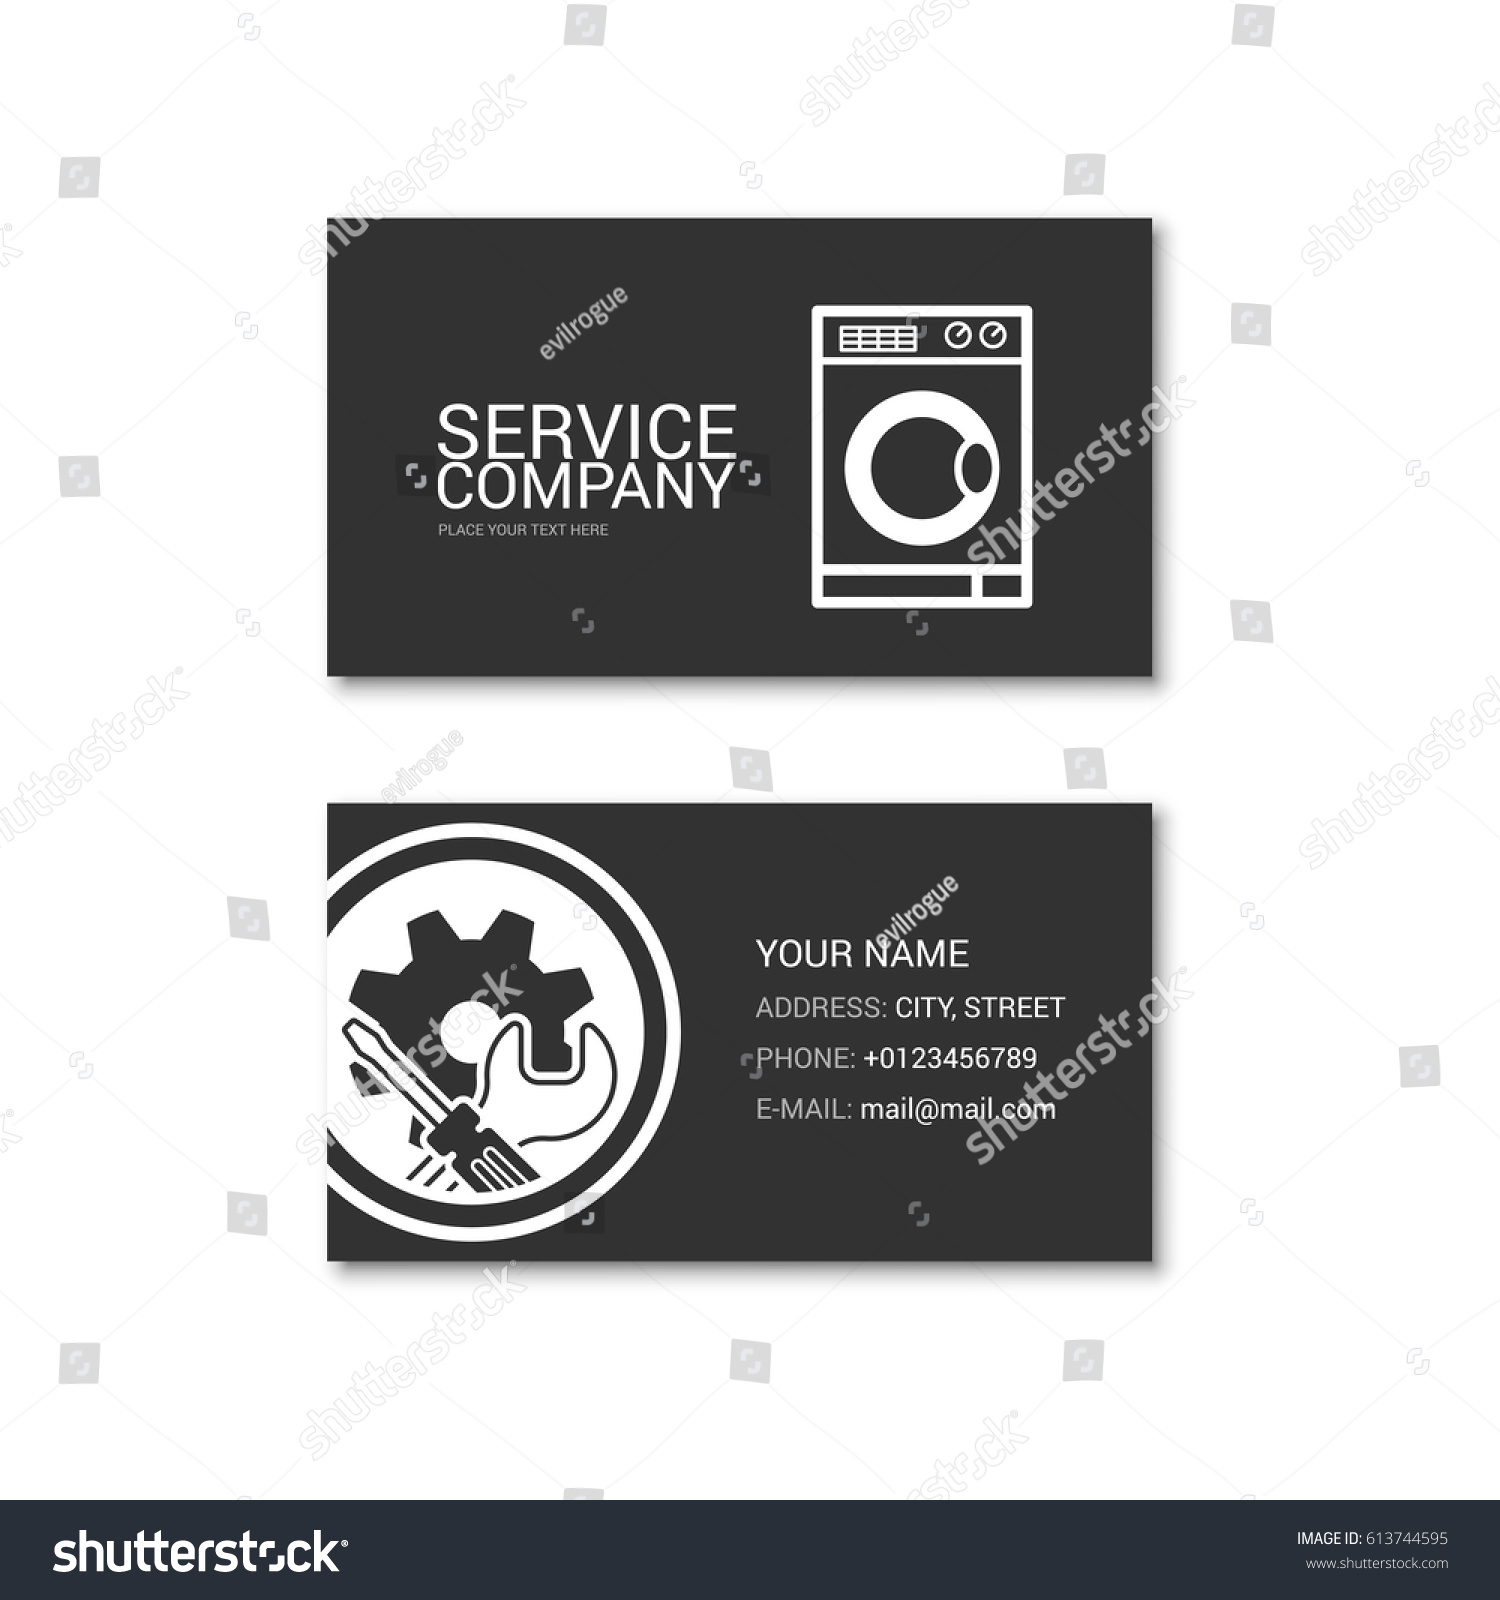 Machine Shop Business Cards Gallery - Free Business Cards